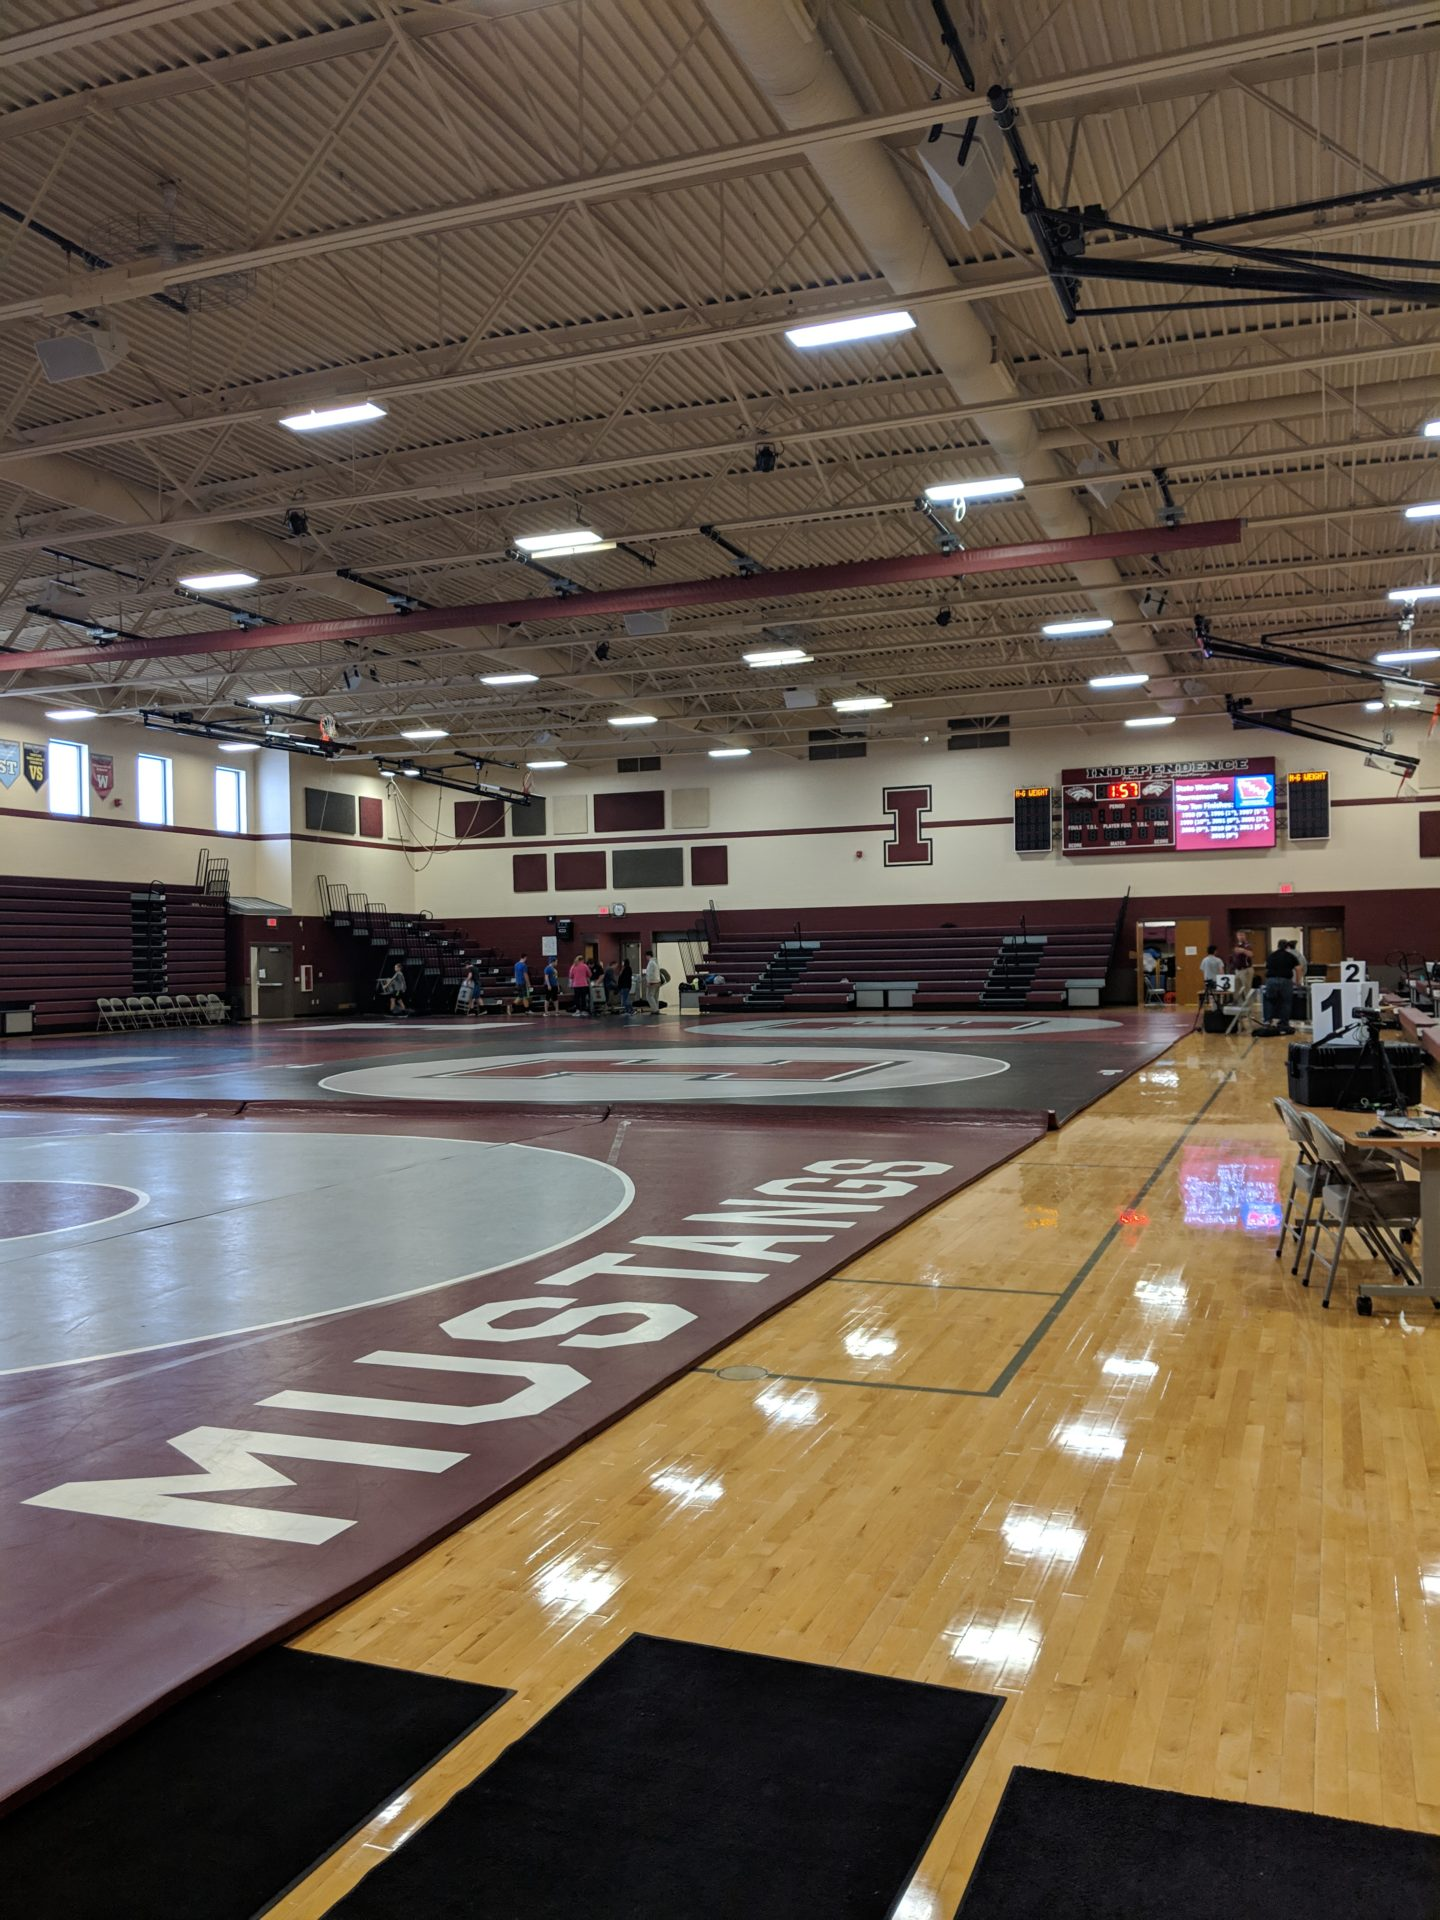 Students setting up wrestling tournement